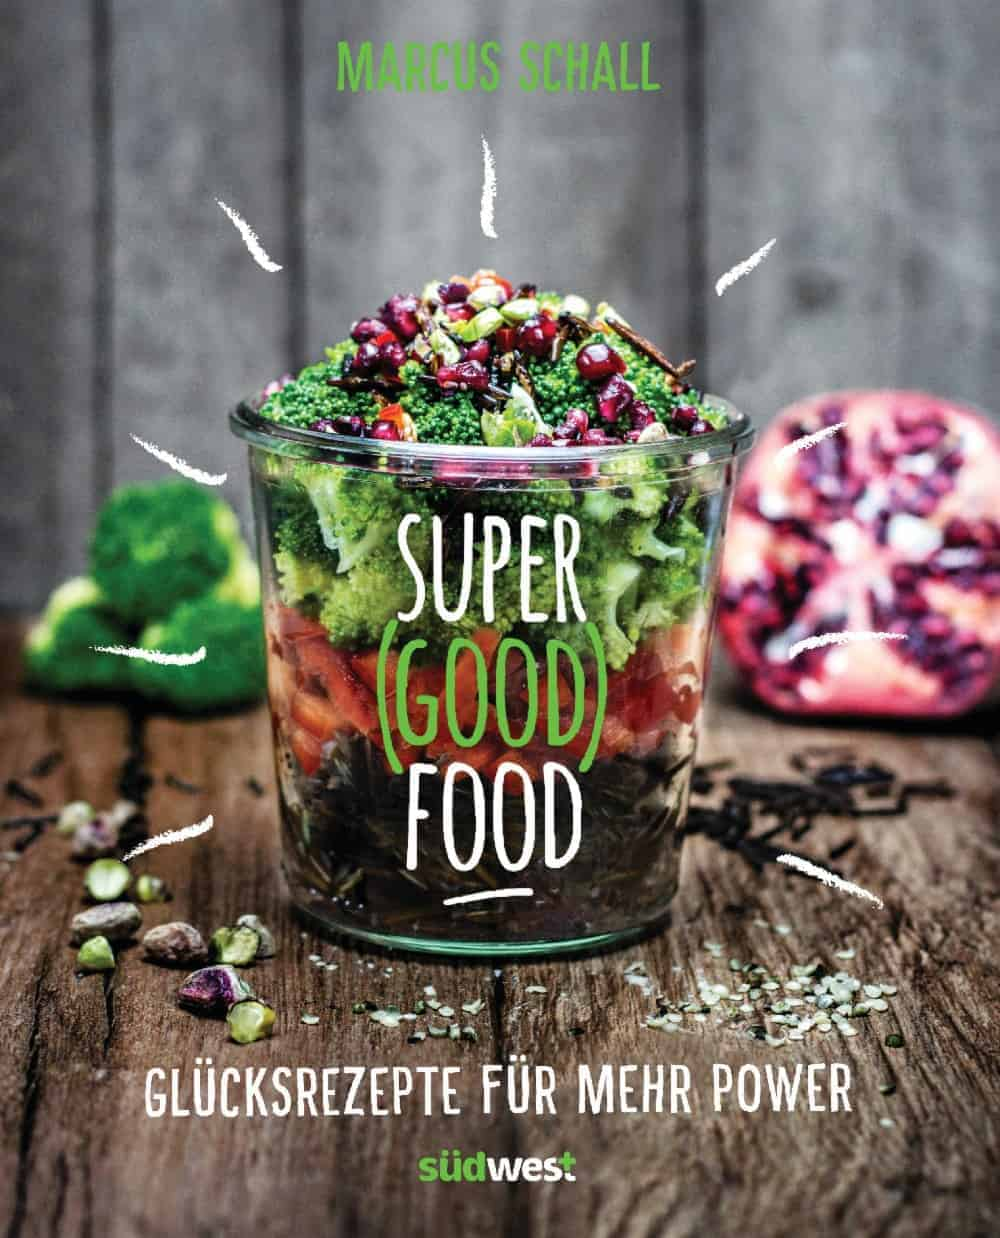 Supergoodfood Buch